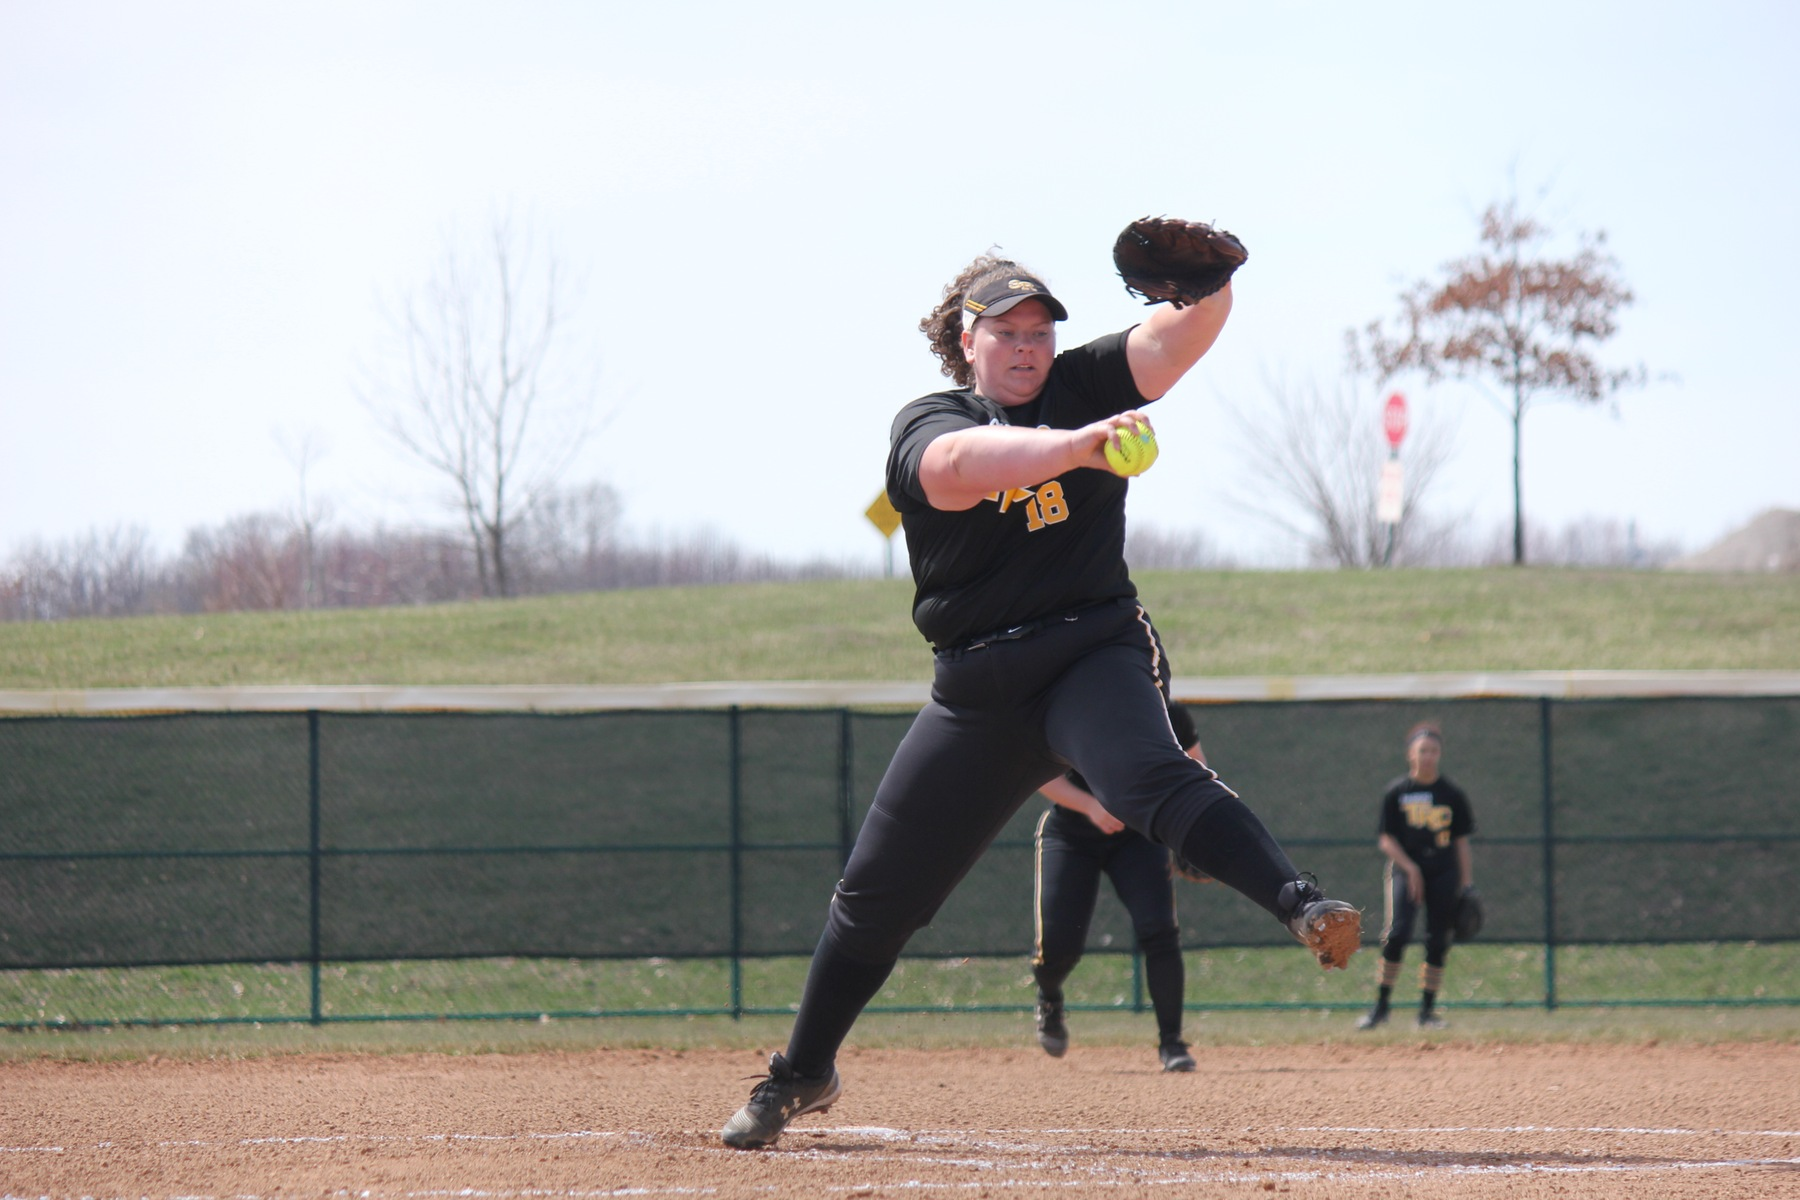 Lady Raiders Softball sweeps St. Charles to reach 10 straight wins